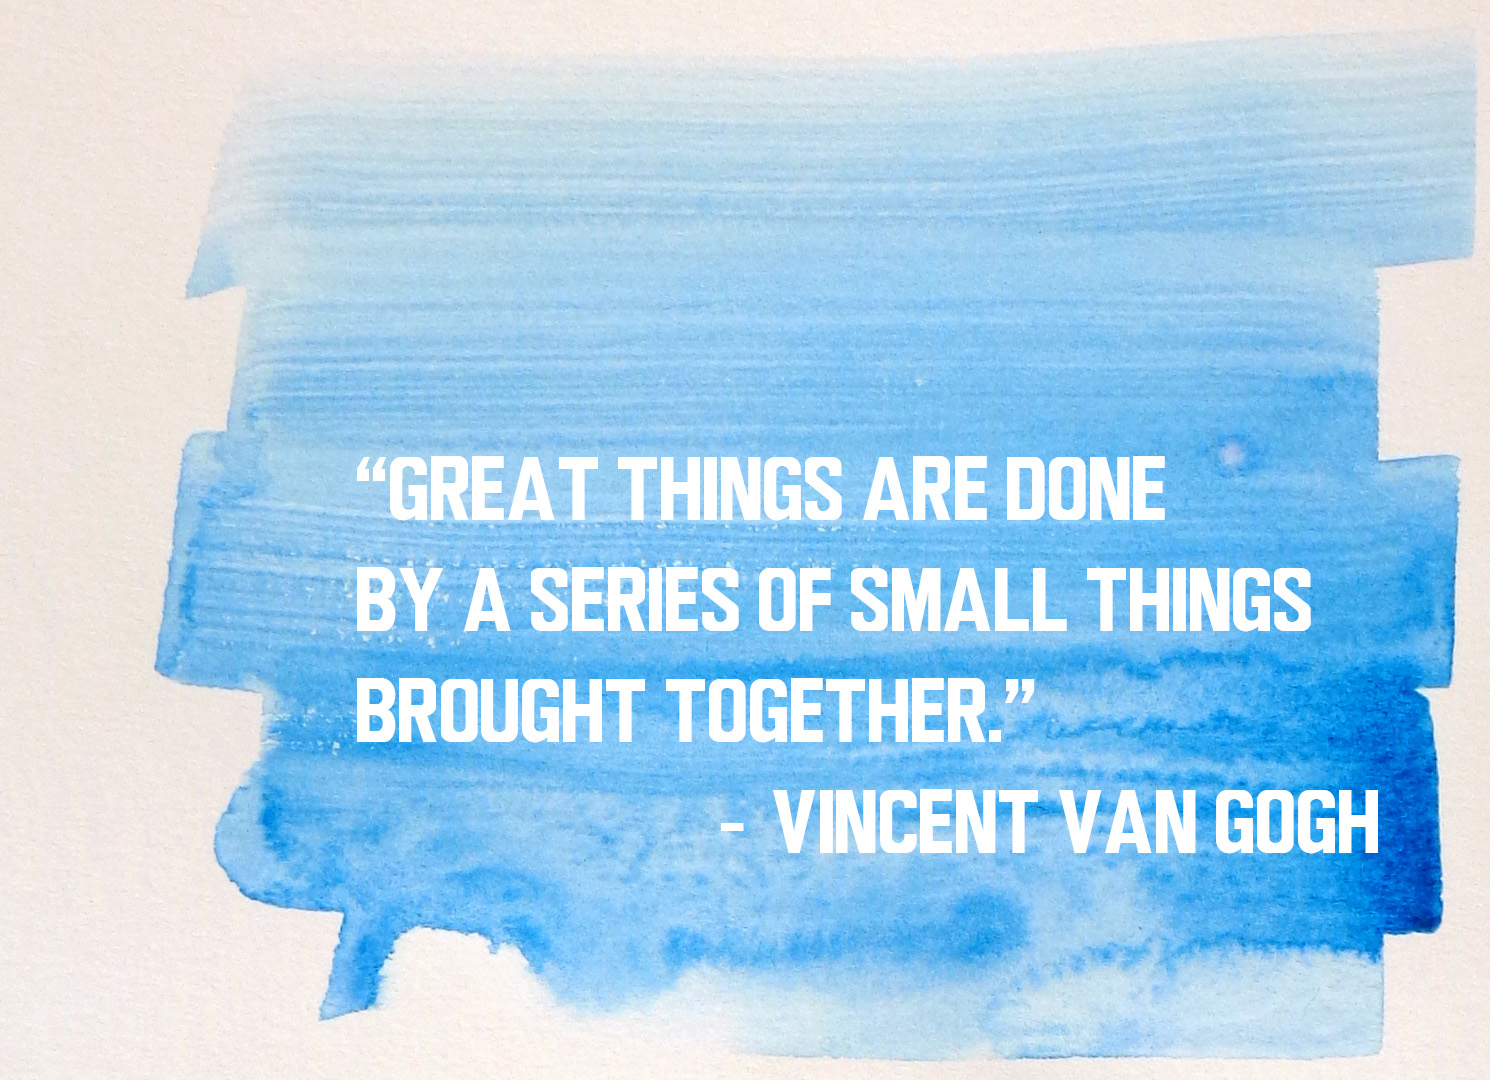 """Great things are done by a series of small things brought together."" - Vincent Van Gogh"